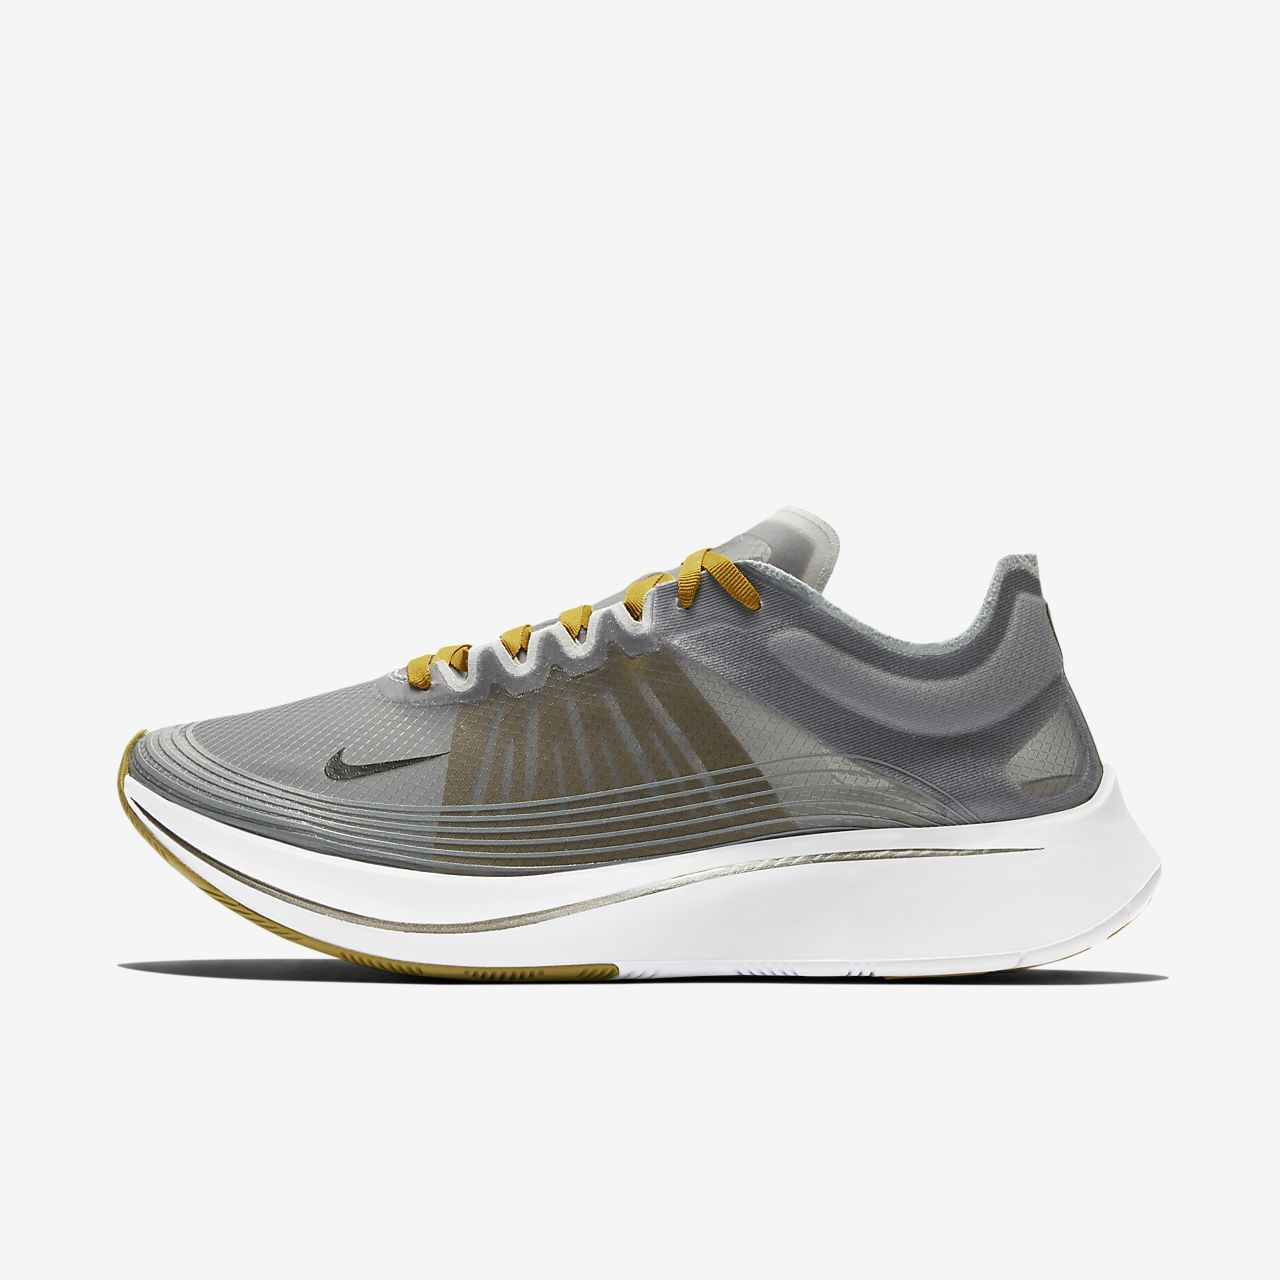 216d1b4f4e3bf Nike Zoom Fly SP Running Shoe. Nike.com